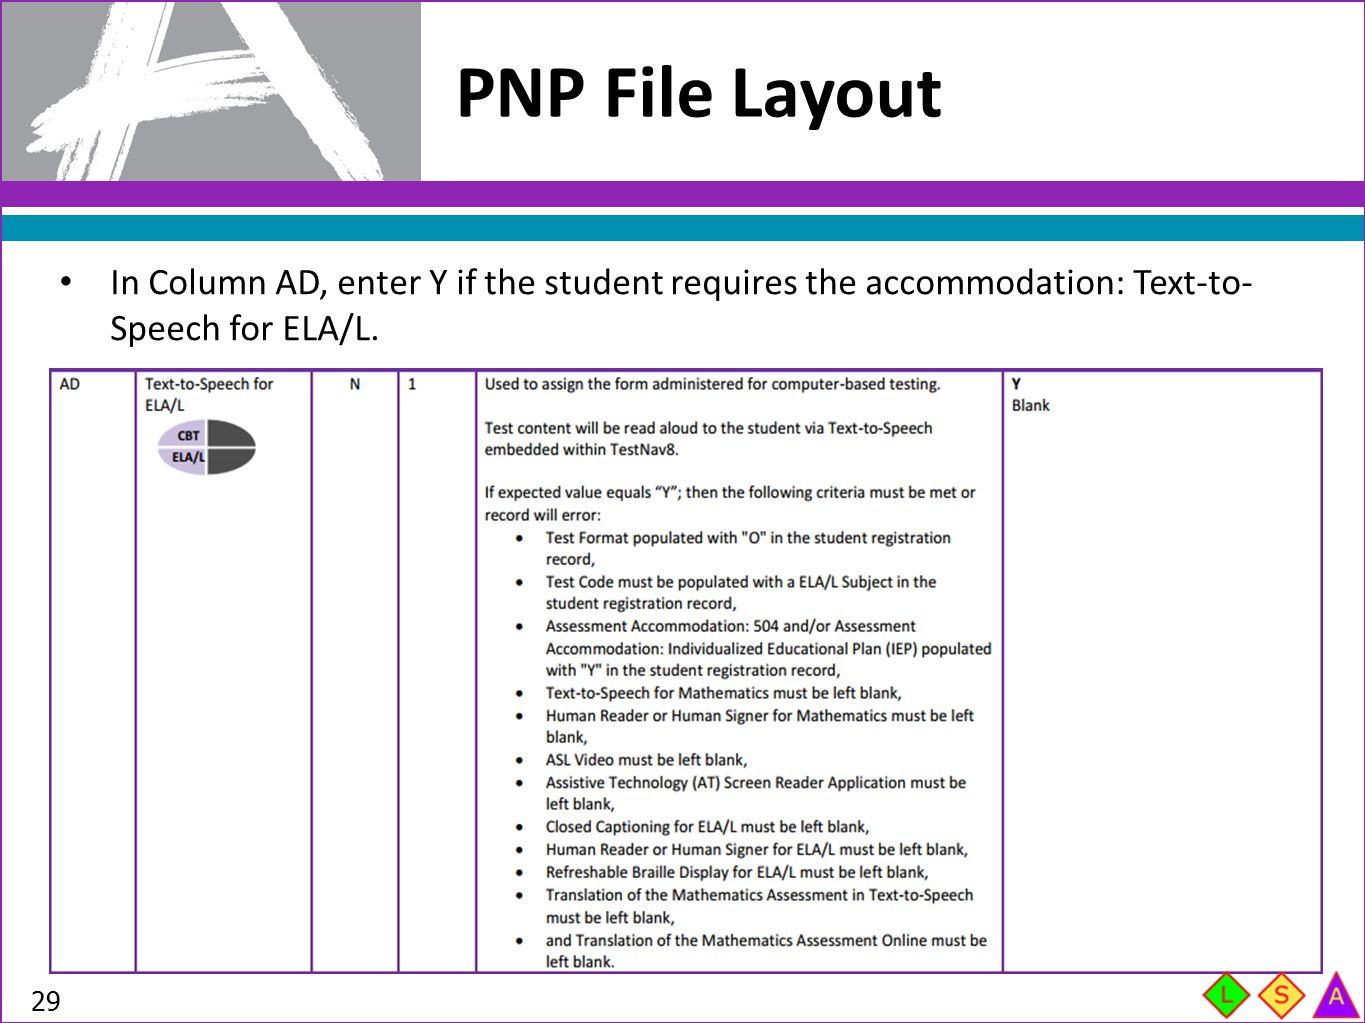 PNP File Layout 29 In Column AD, enter Y if the student requires the accommodation: Text-to- Speech for ELA/L.